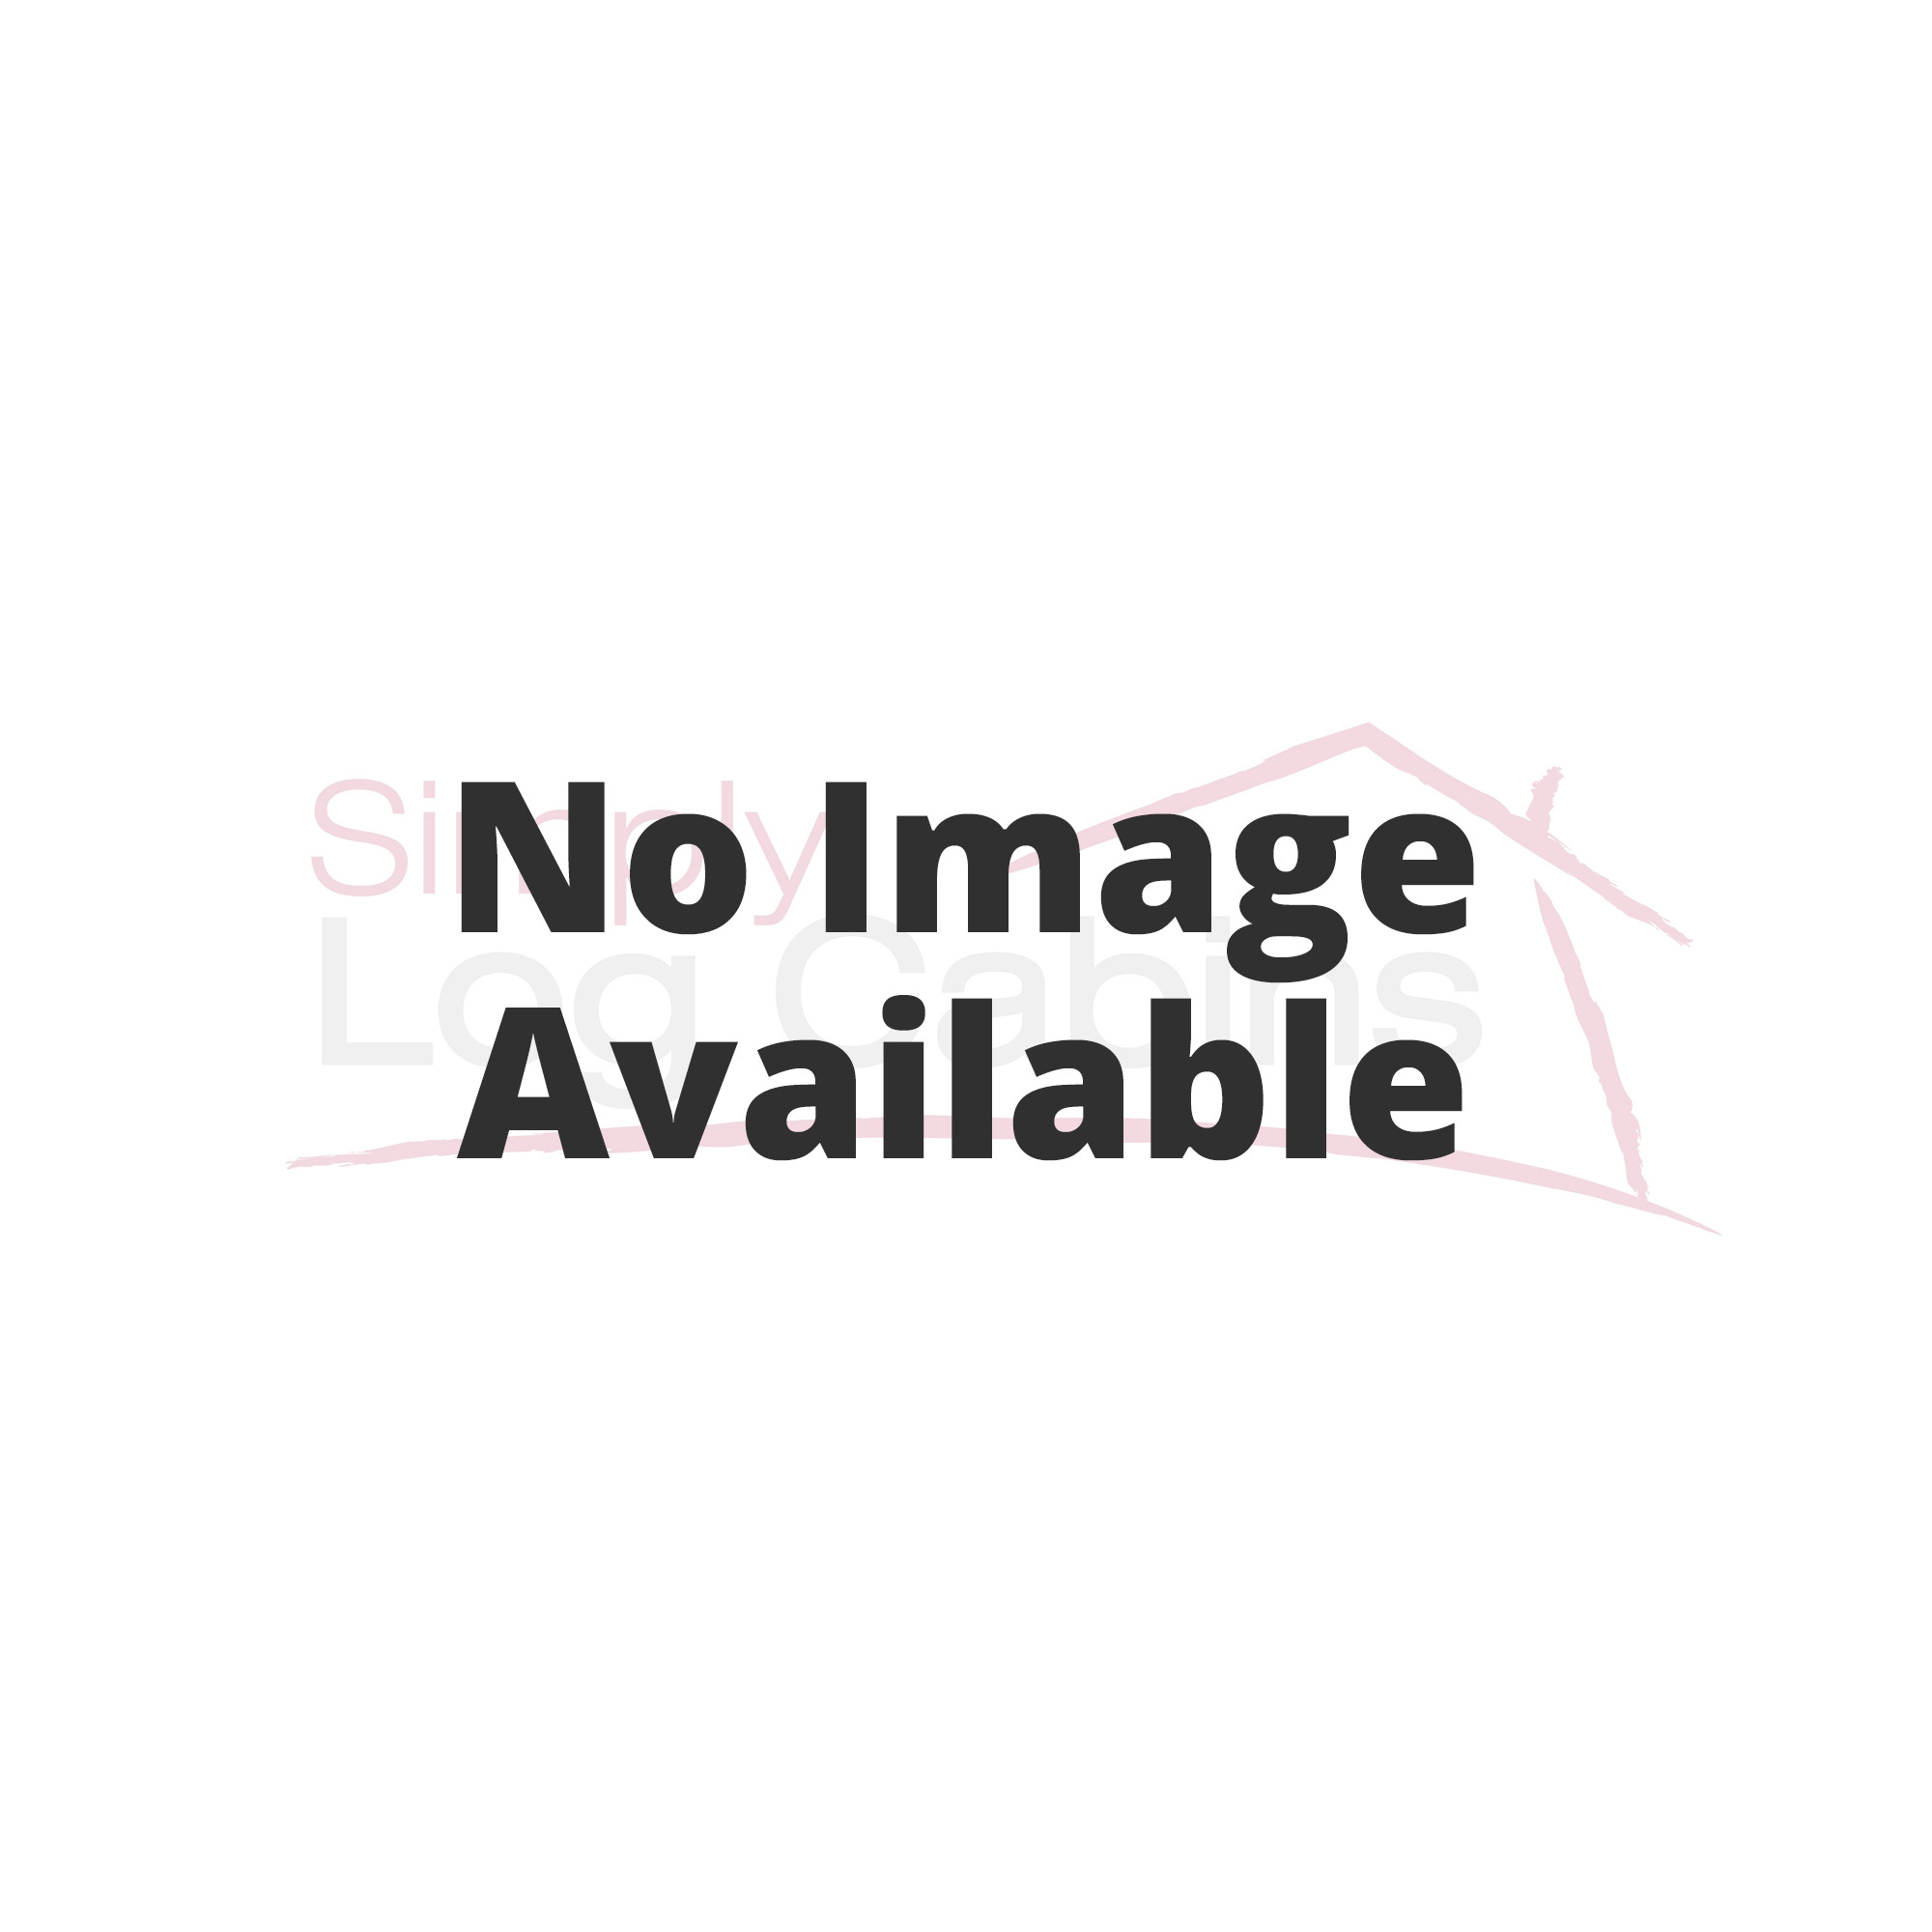 Jagram Wooden Benches for Garden Buildings